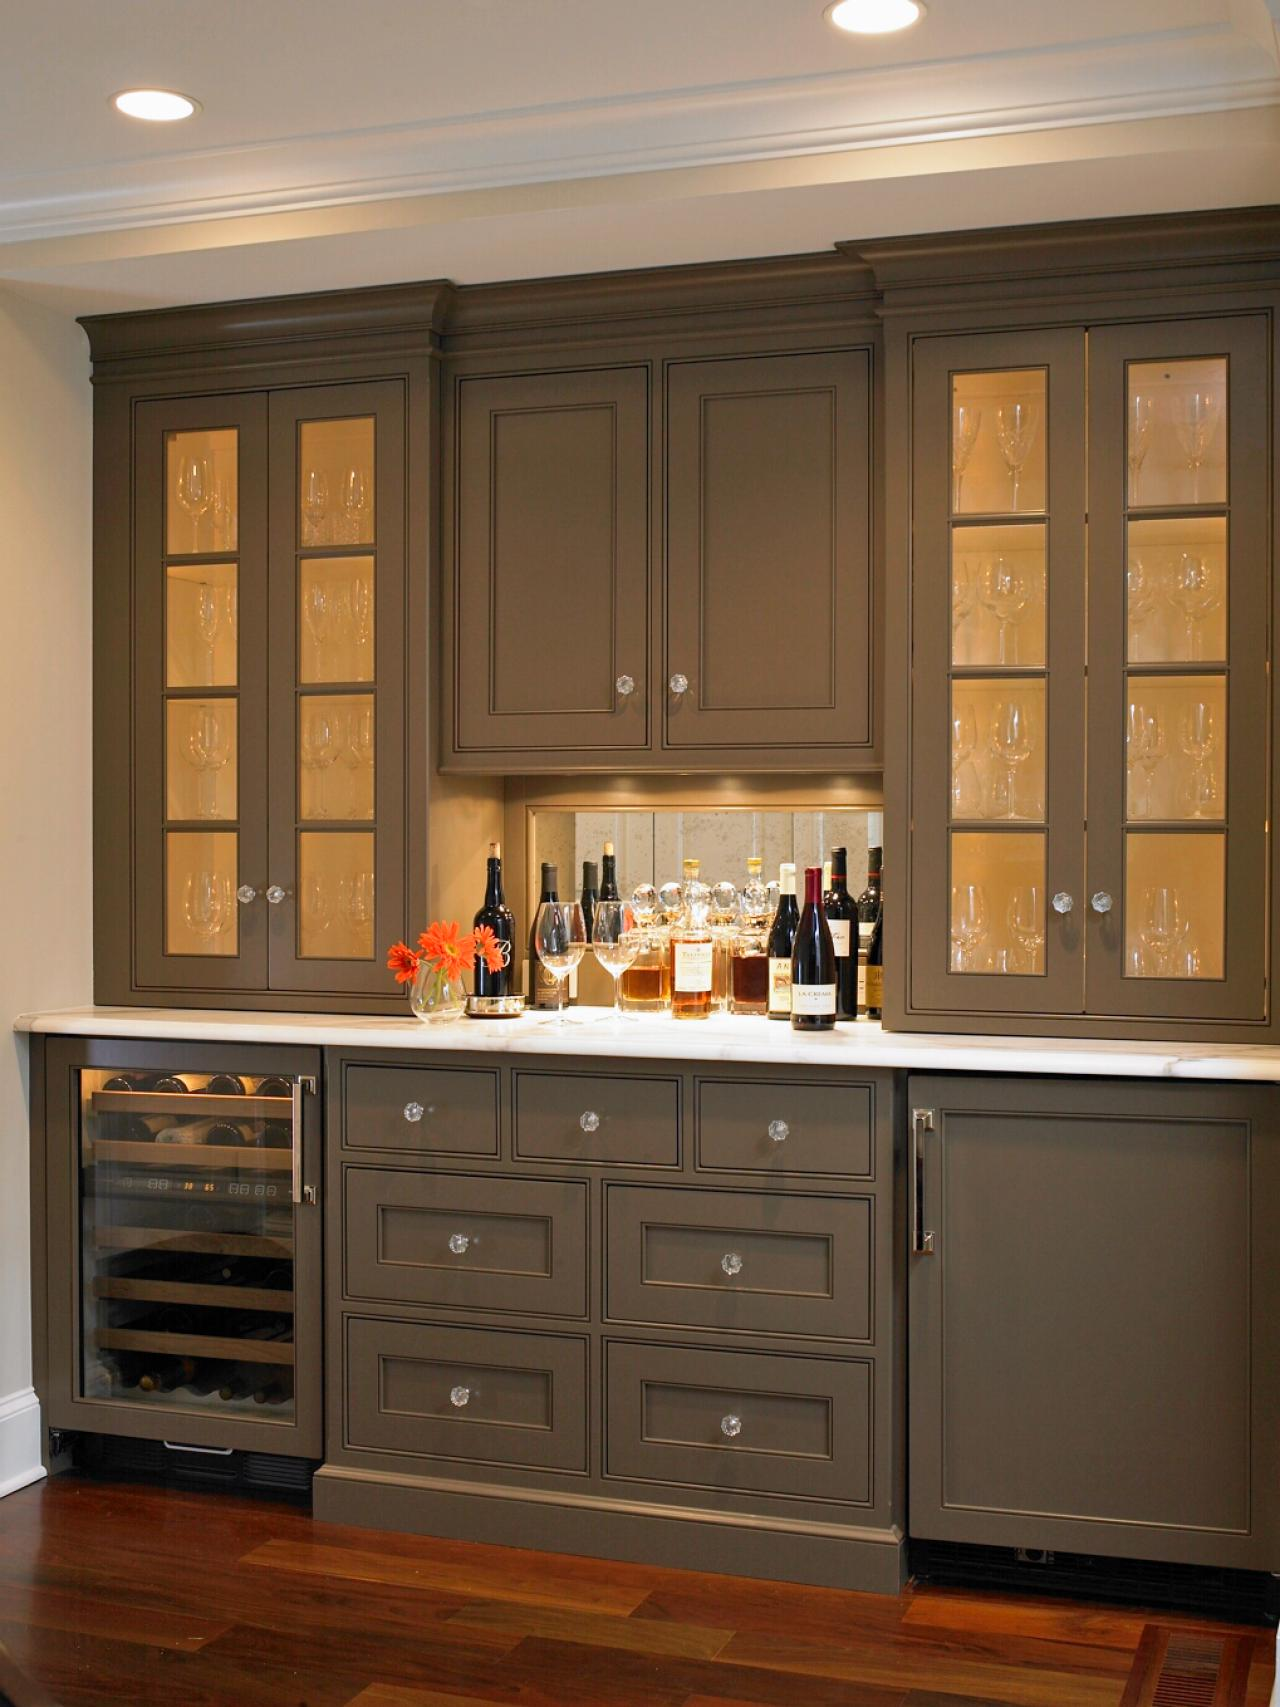 Shaker kitchen cabinets pictures ideas tips from hgtv hgtv - Kitchen cupboards ideas ...